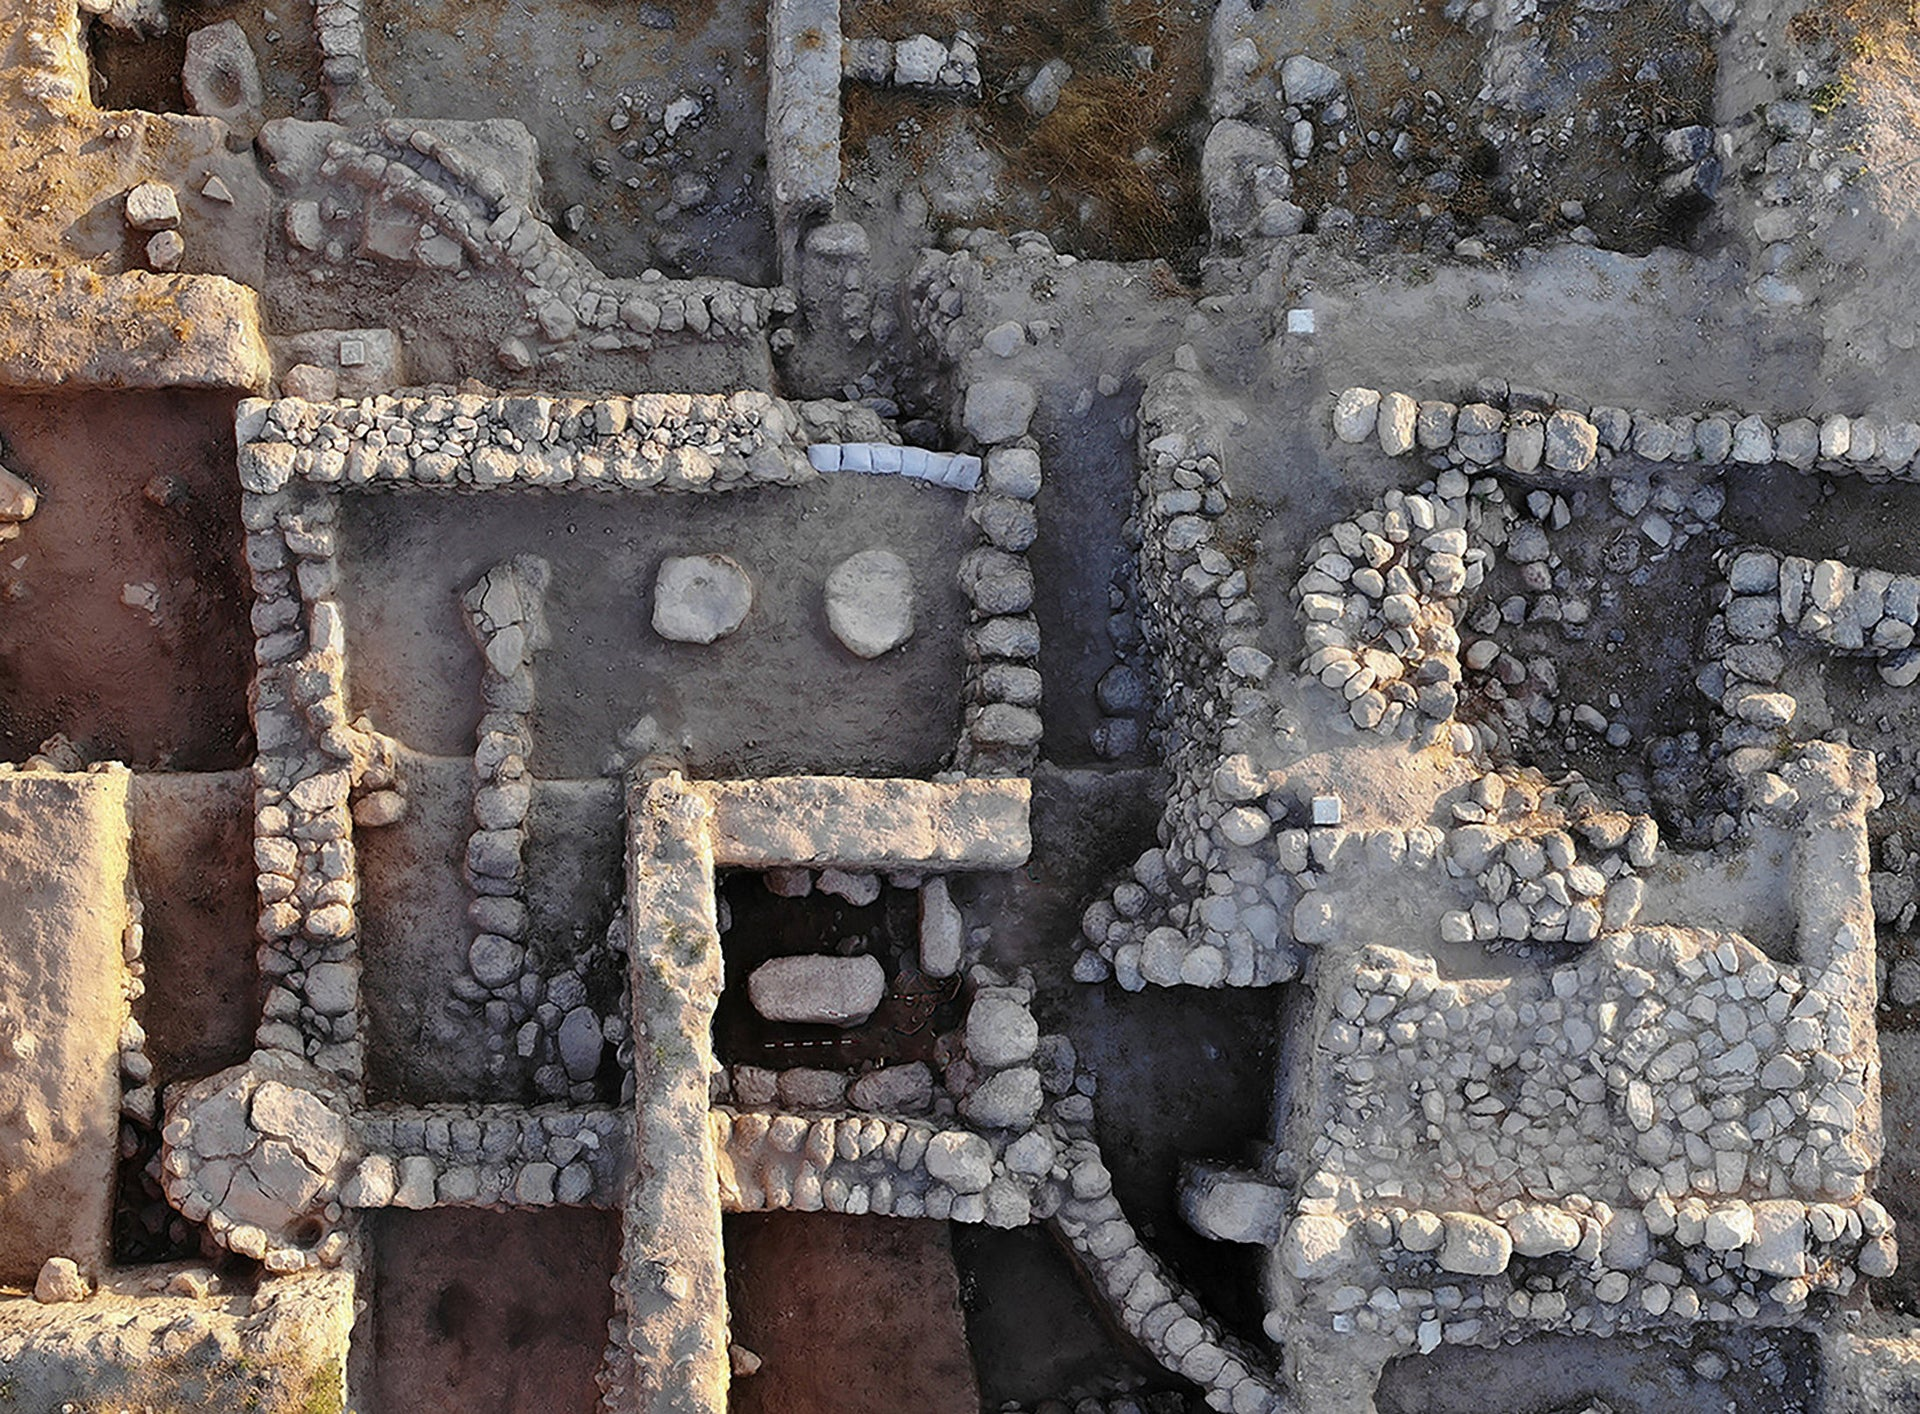 A view from the air of the early Iron Age temple in Beth Shemesh